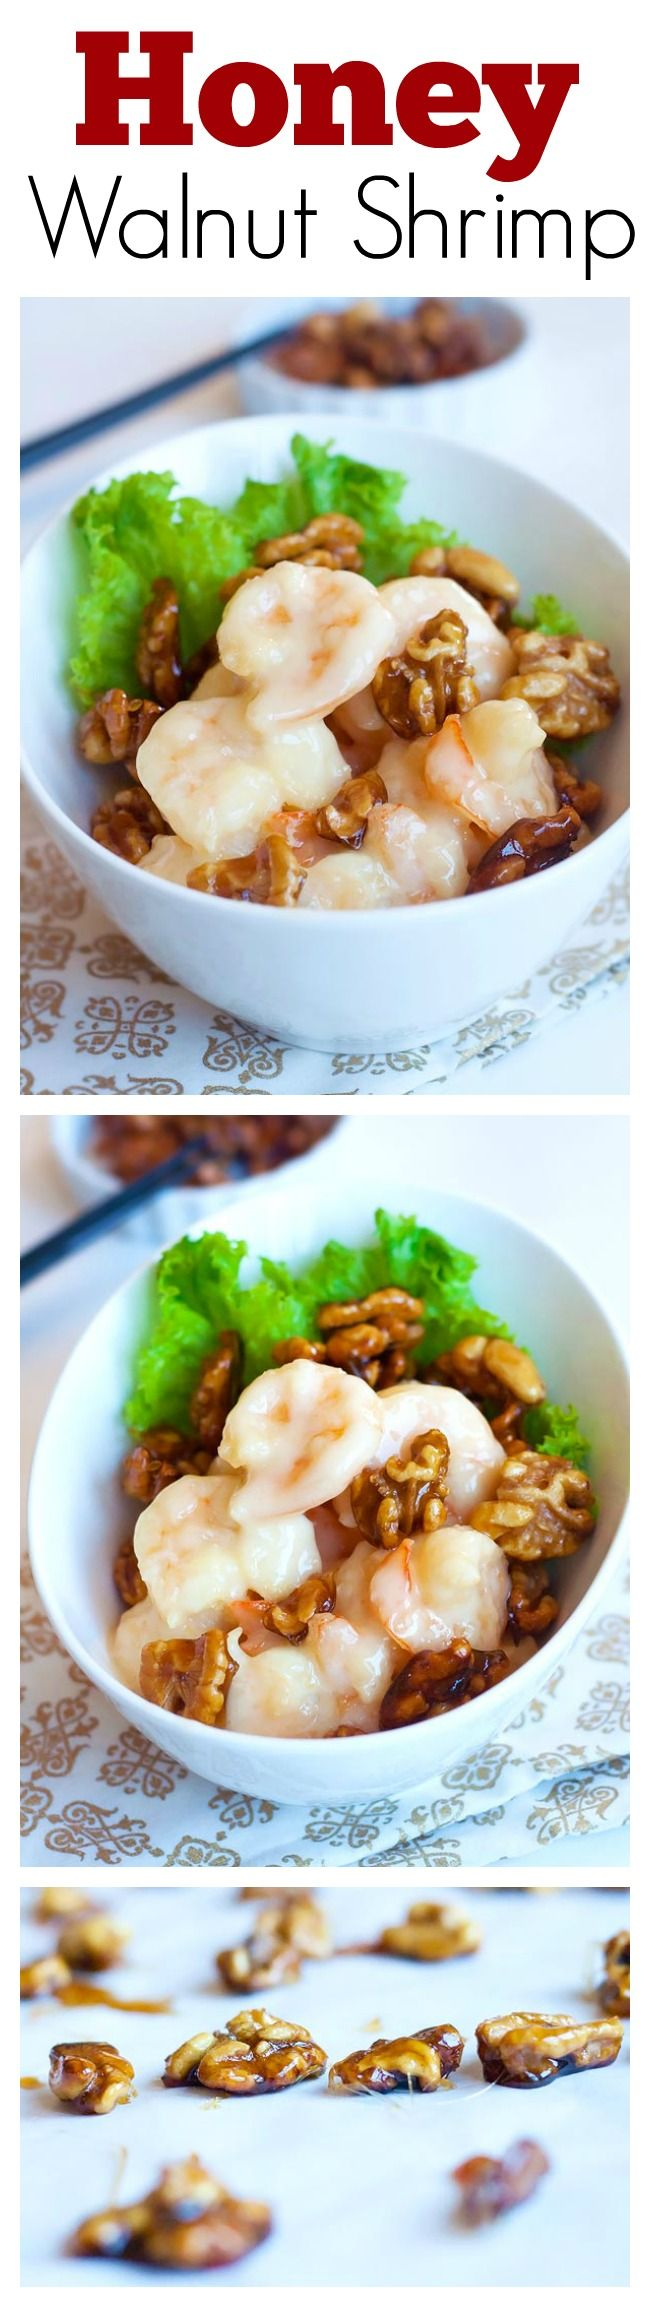 Honey walnut shrimp with sweet mayo sauce. Learn how to ...